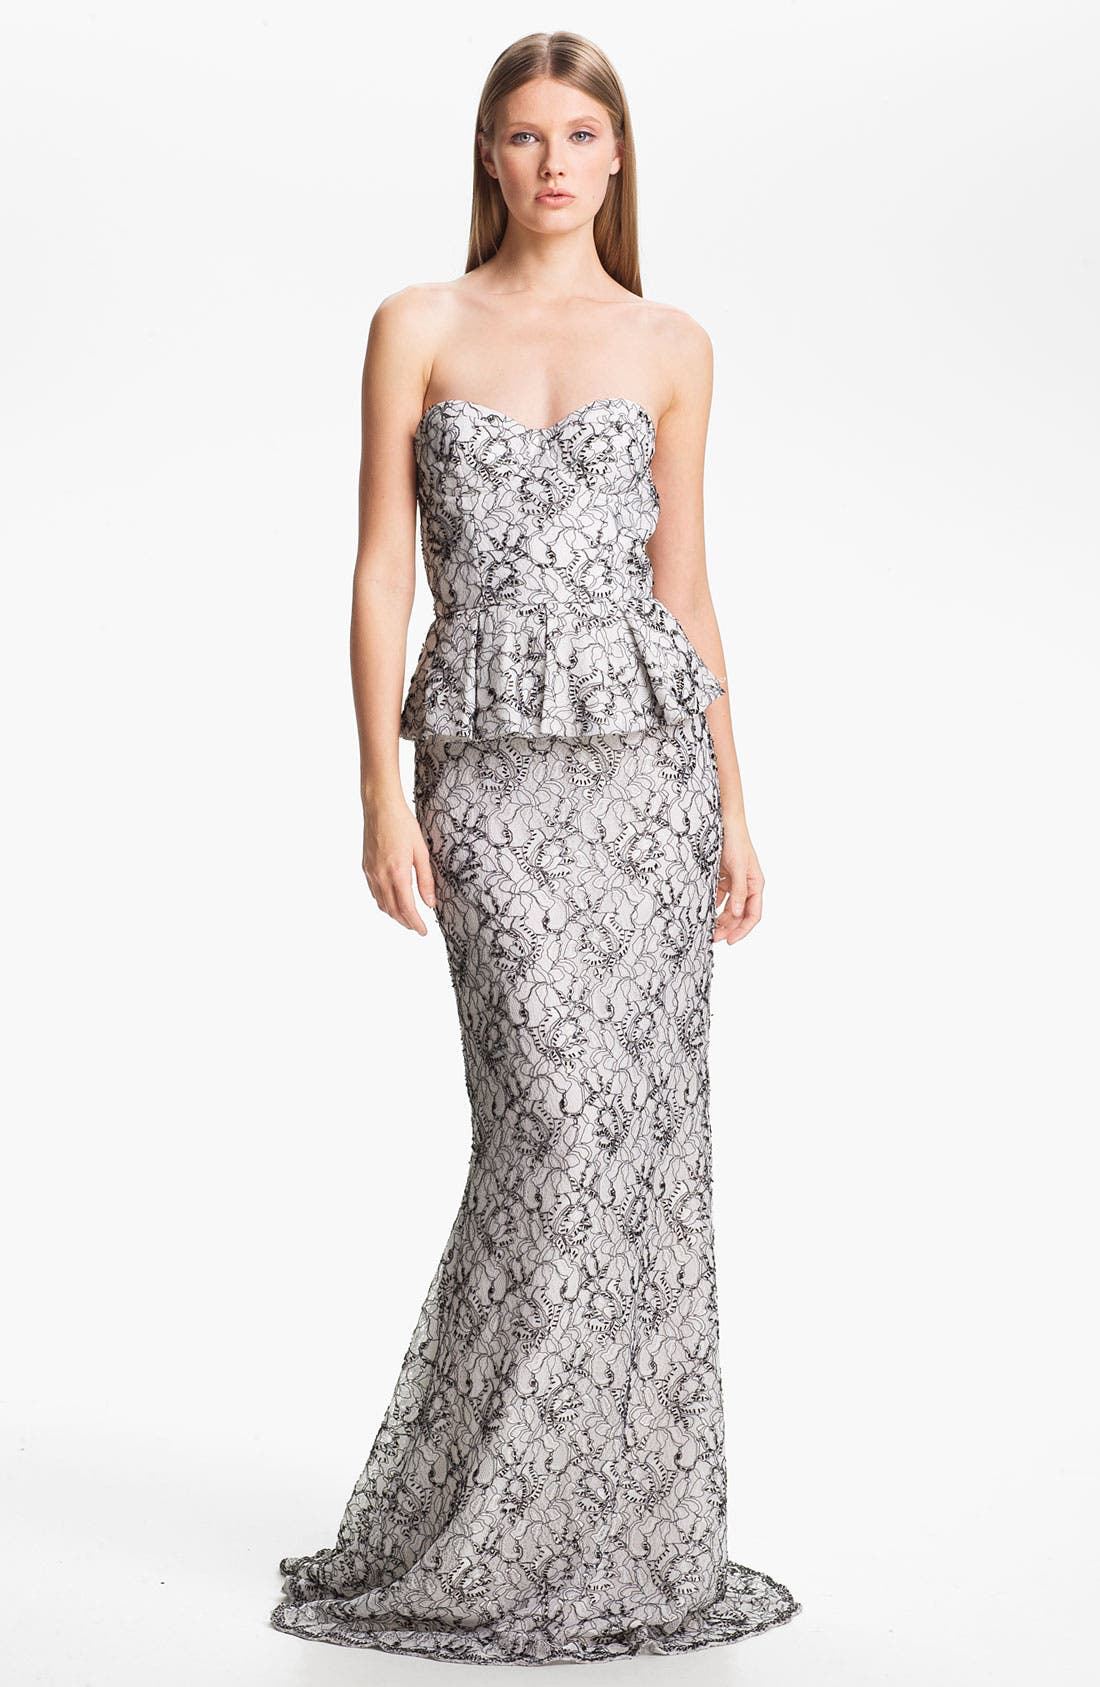 Alternate Image 1 Selected - Alice + Olivia 'Penelope' Strapless Mermaid Gown